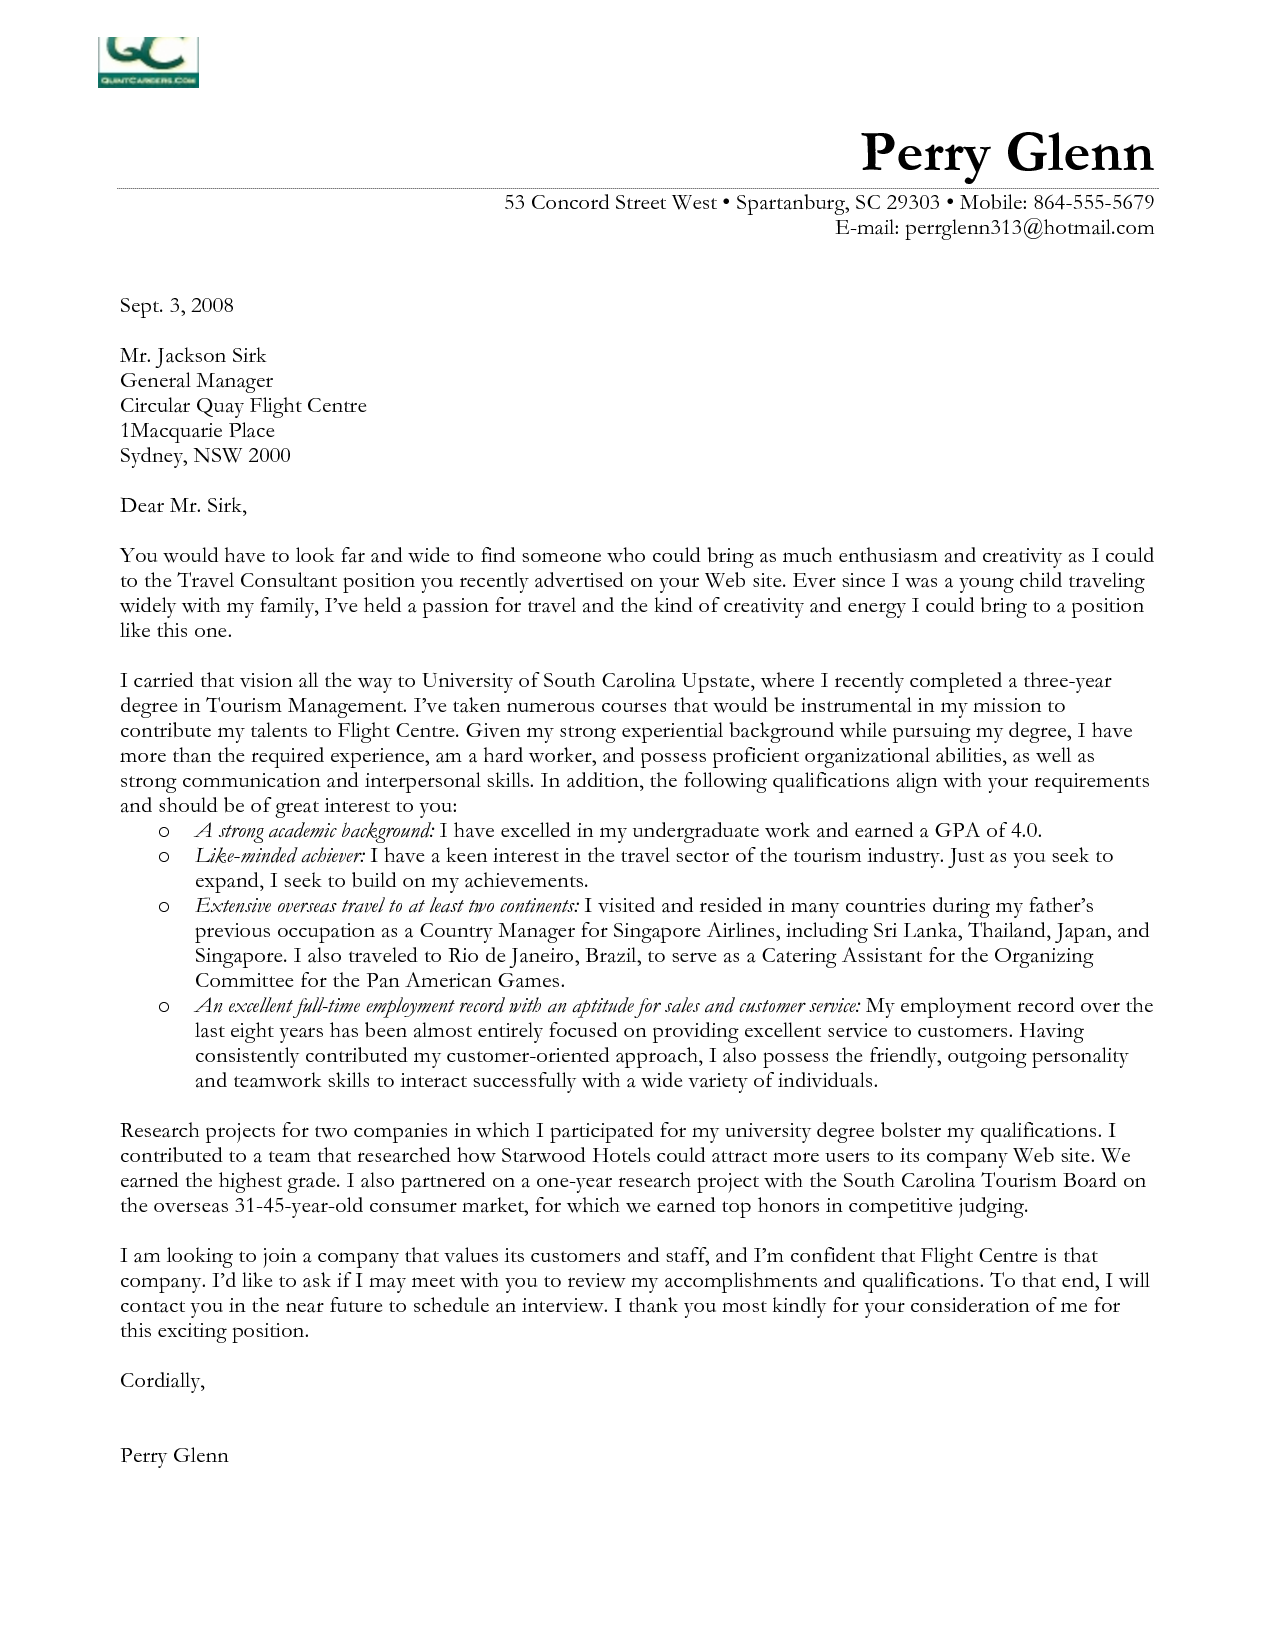 Cover Letter Template Consulting | Informative essay ...